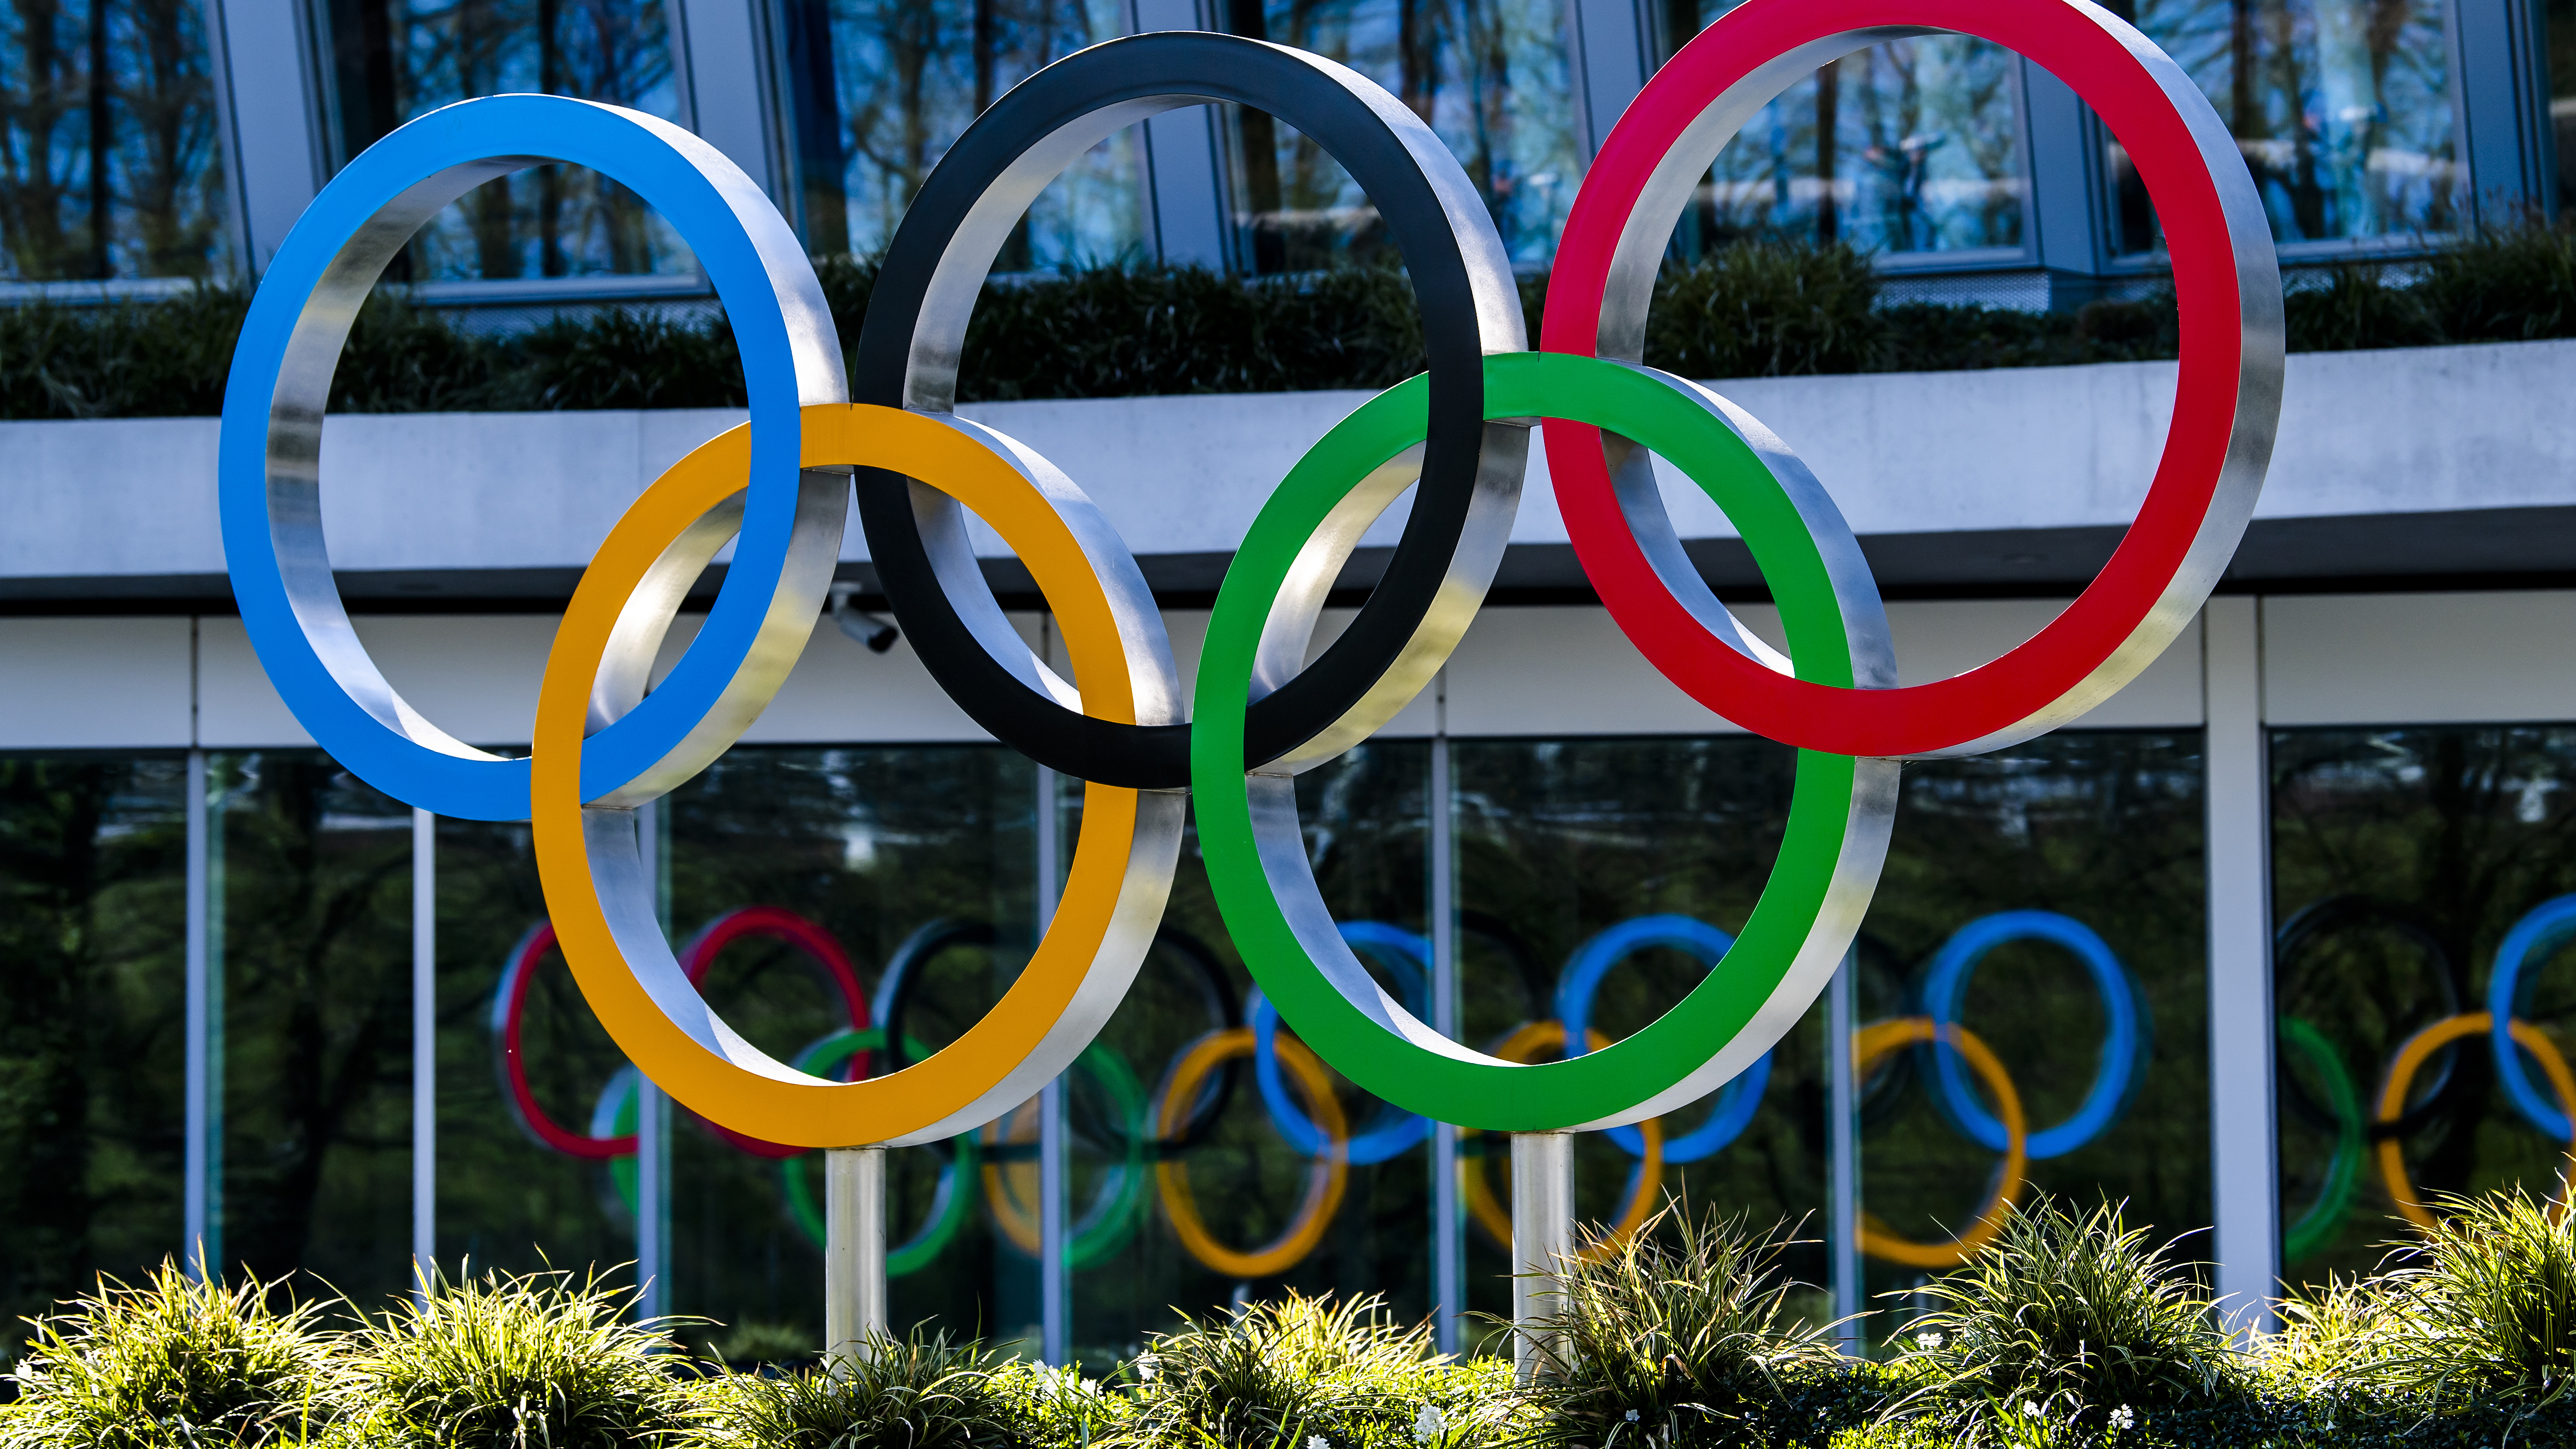 Westlake Legal Group Tokyo-Olympics11 Tokyo Olympics just beginning the race to reset themselves fox-news/world/world-regions/japan fox-news/sports/olympics fnc/sports fnc b27bc26a-eb03-5ee1-8ae5-77fb2679171d Associated Press article